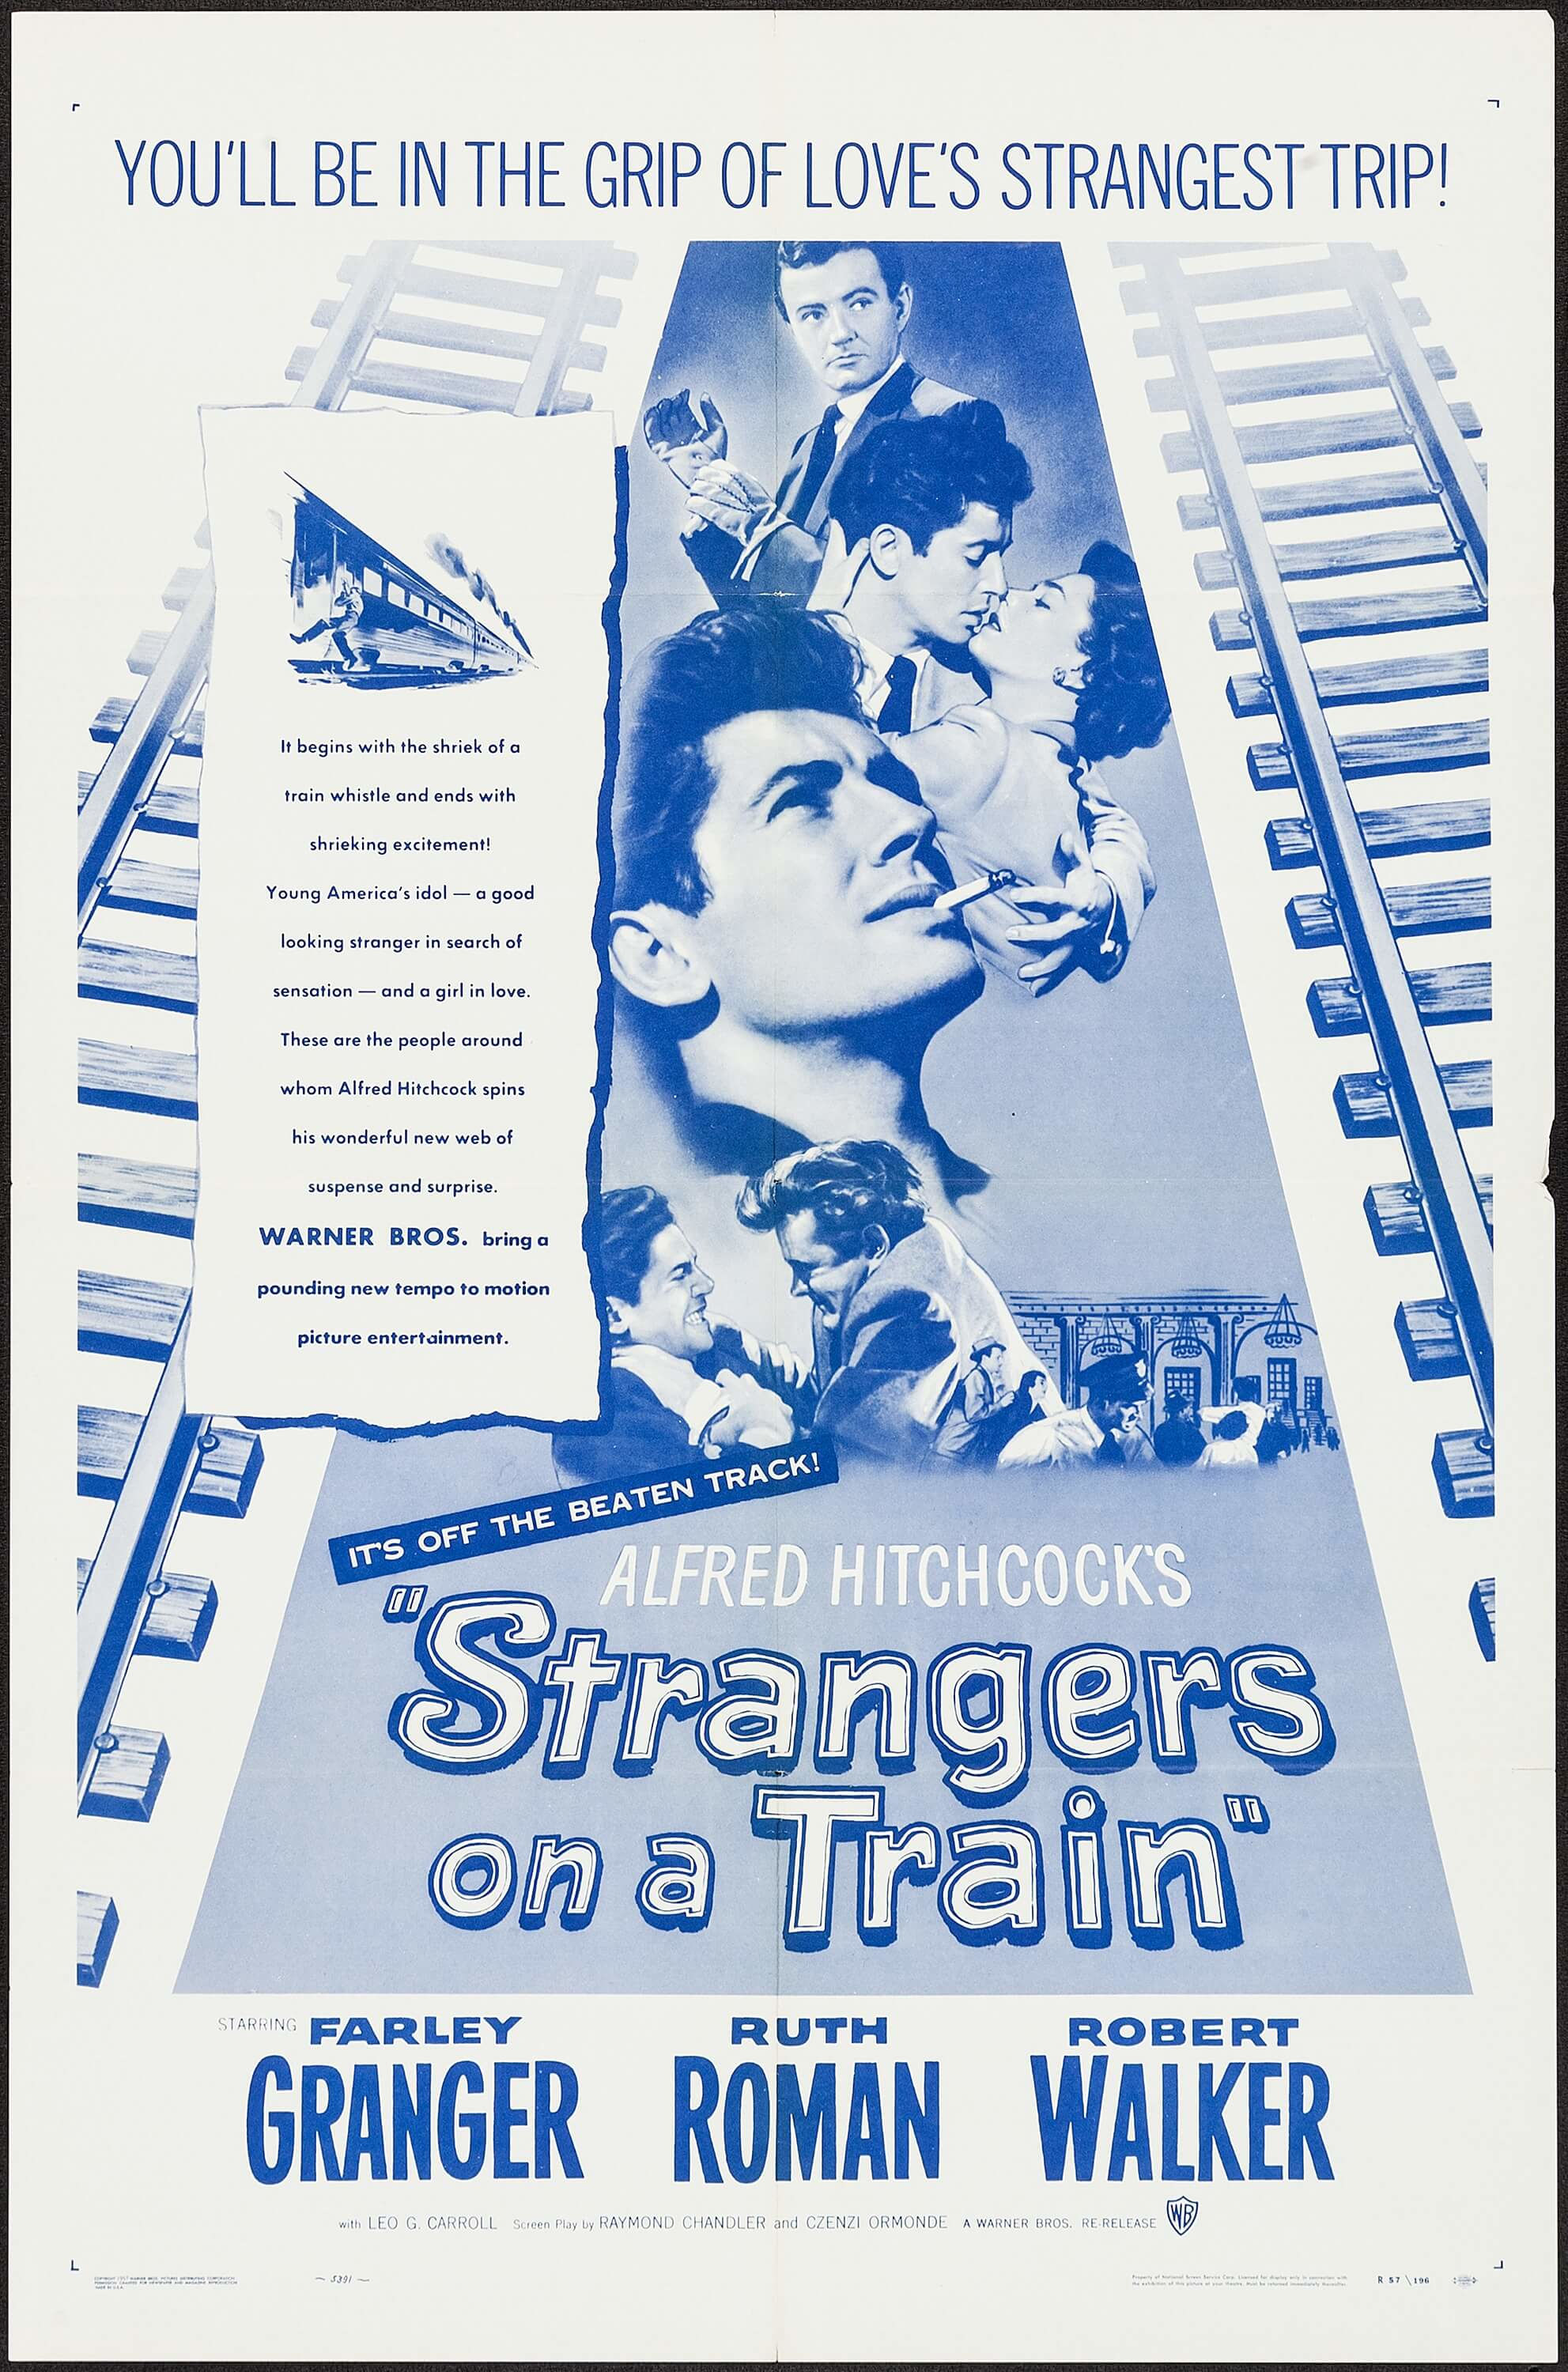 Farley Granger, Ruth Roman, and Robert Walker in Strangers on a Train (1951)